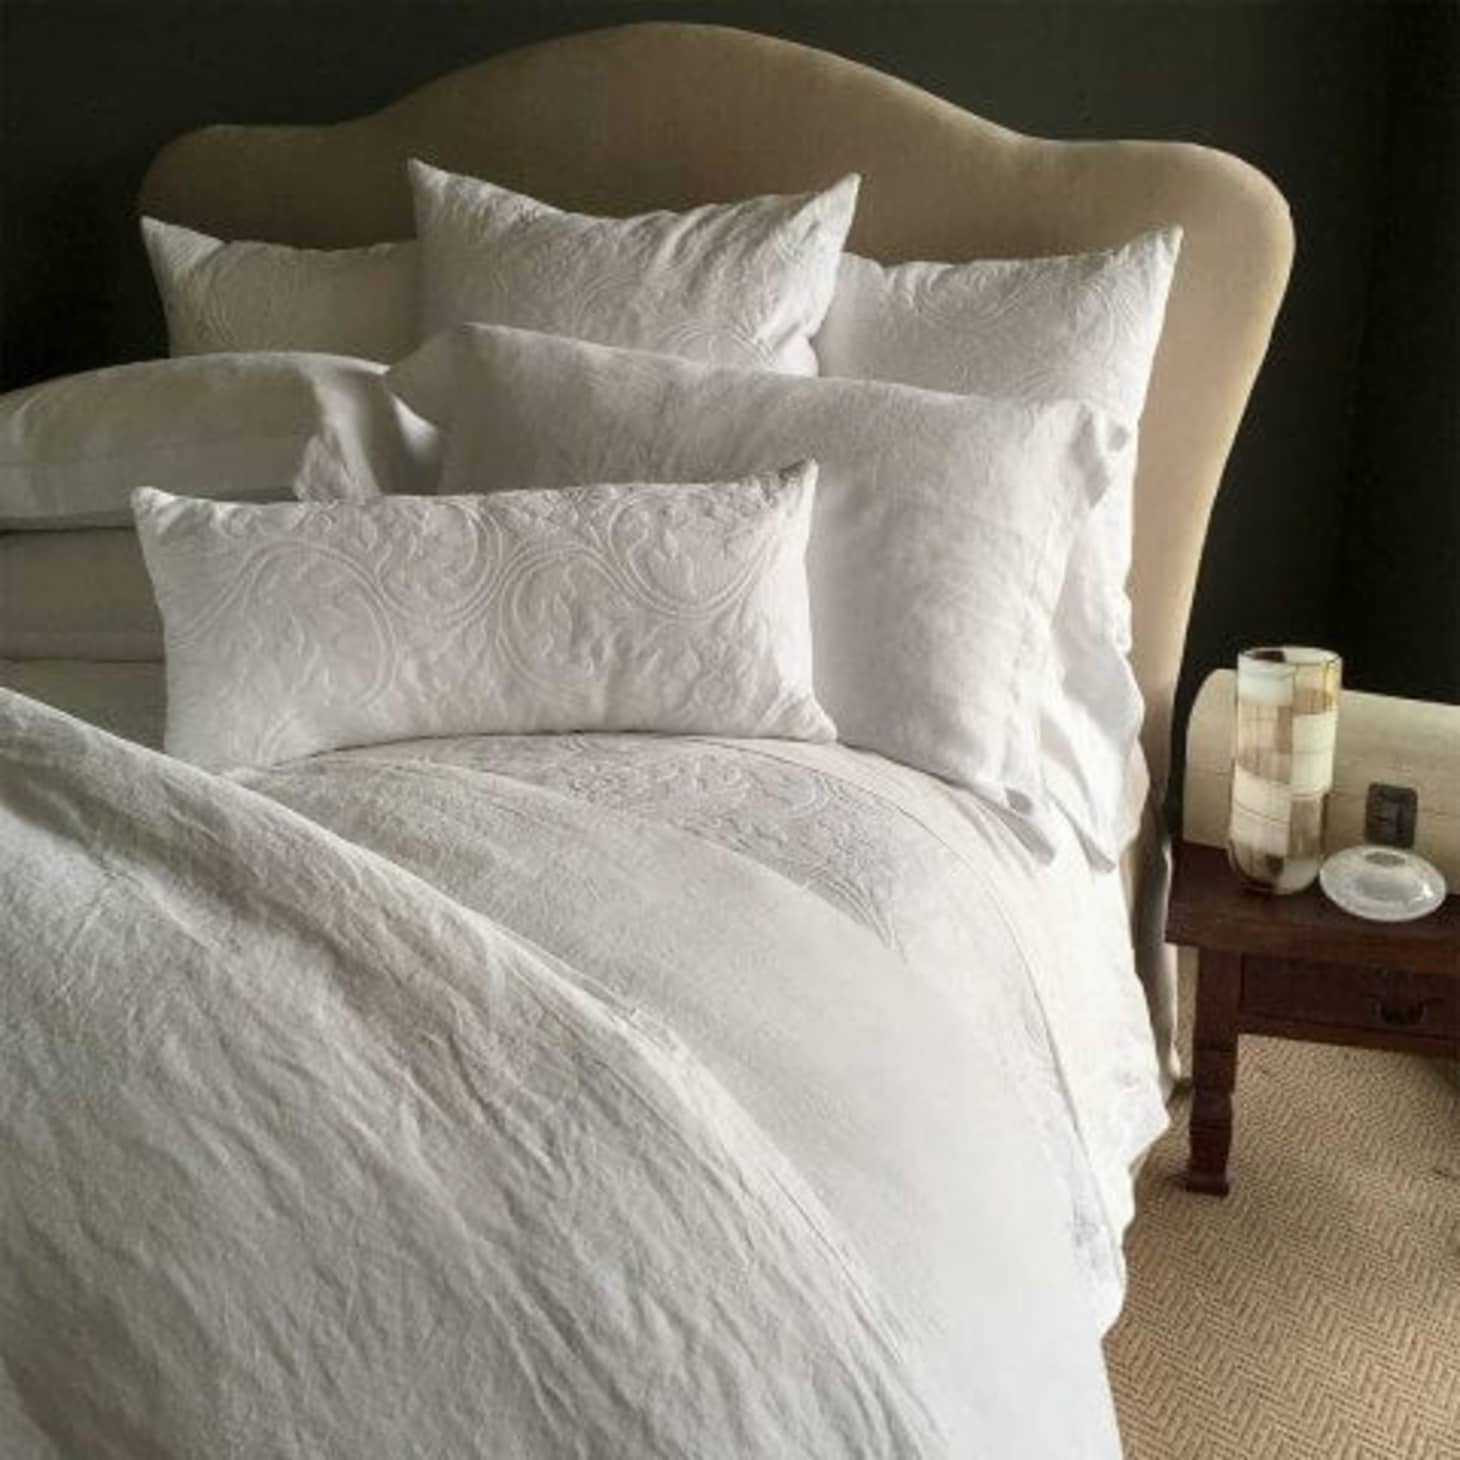 10 Sources for Luxury Bedding | Apartment Therapy